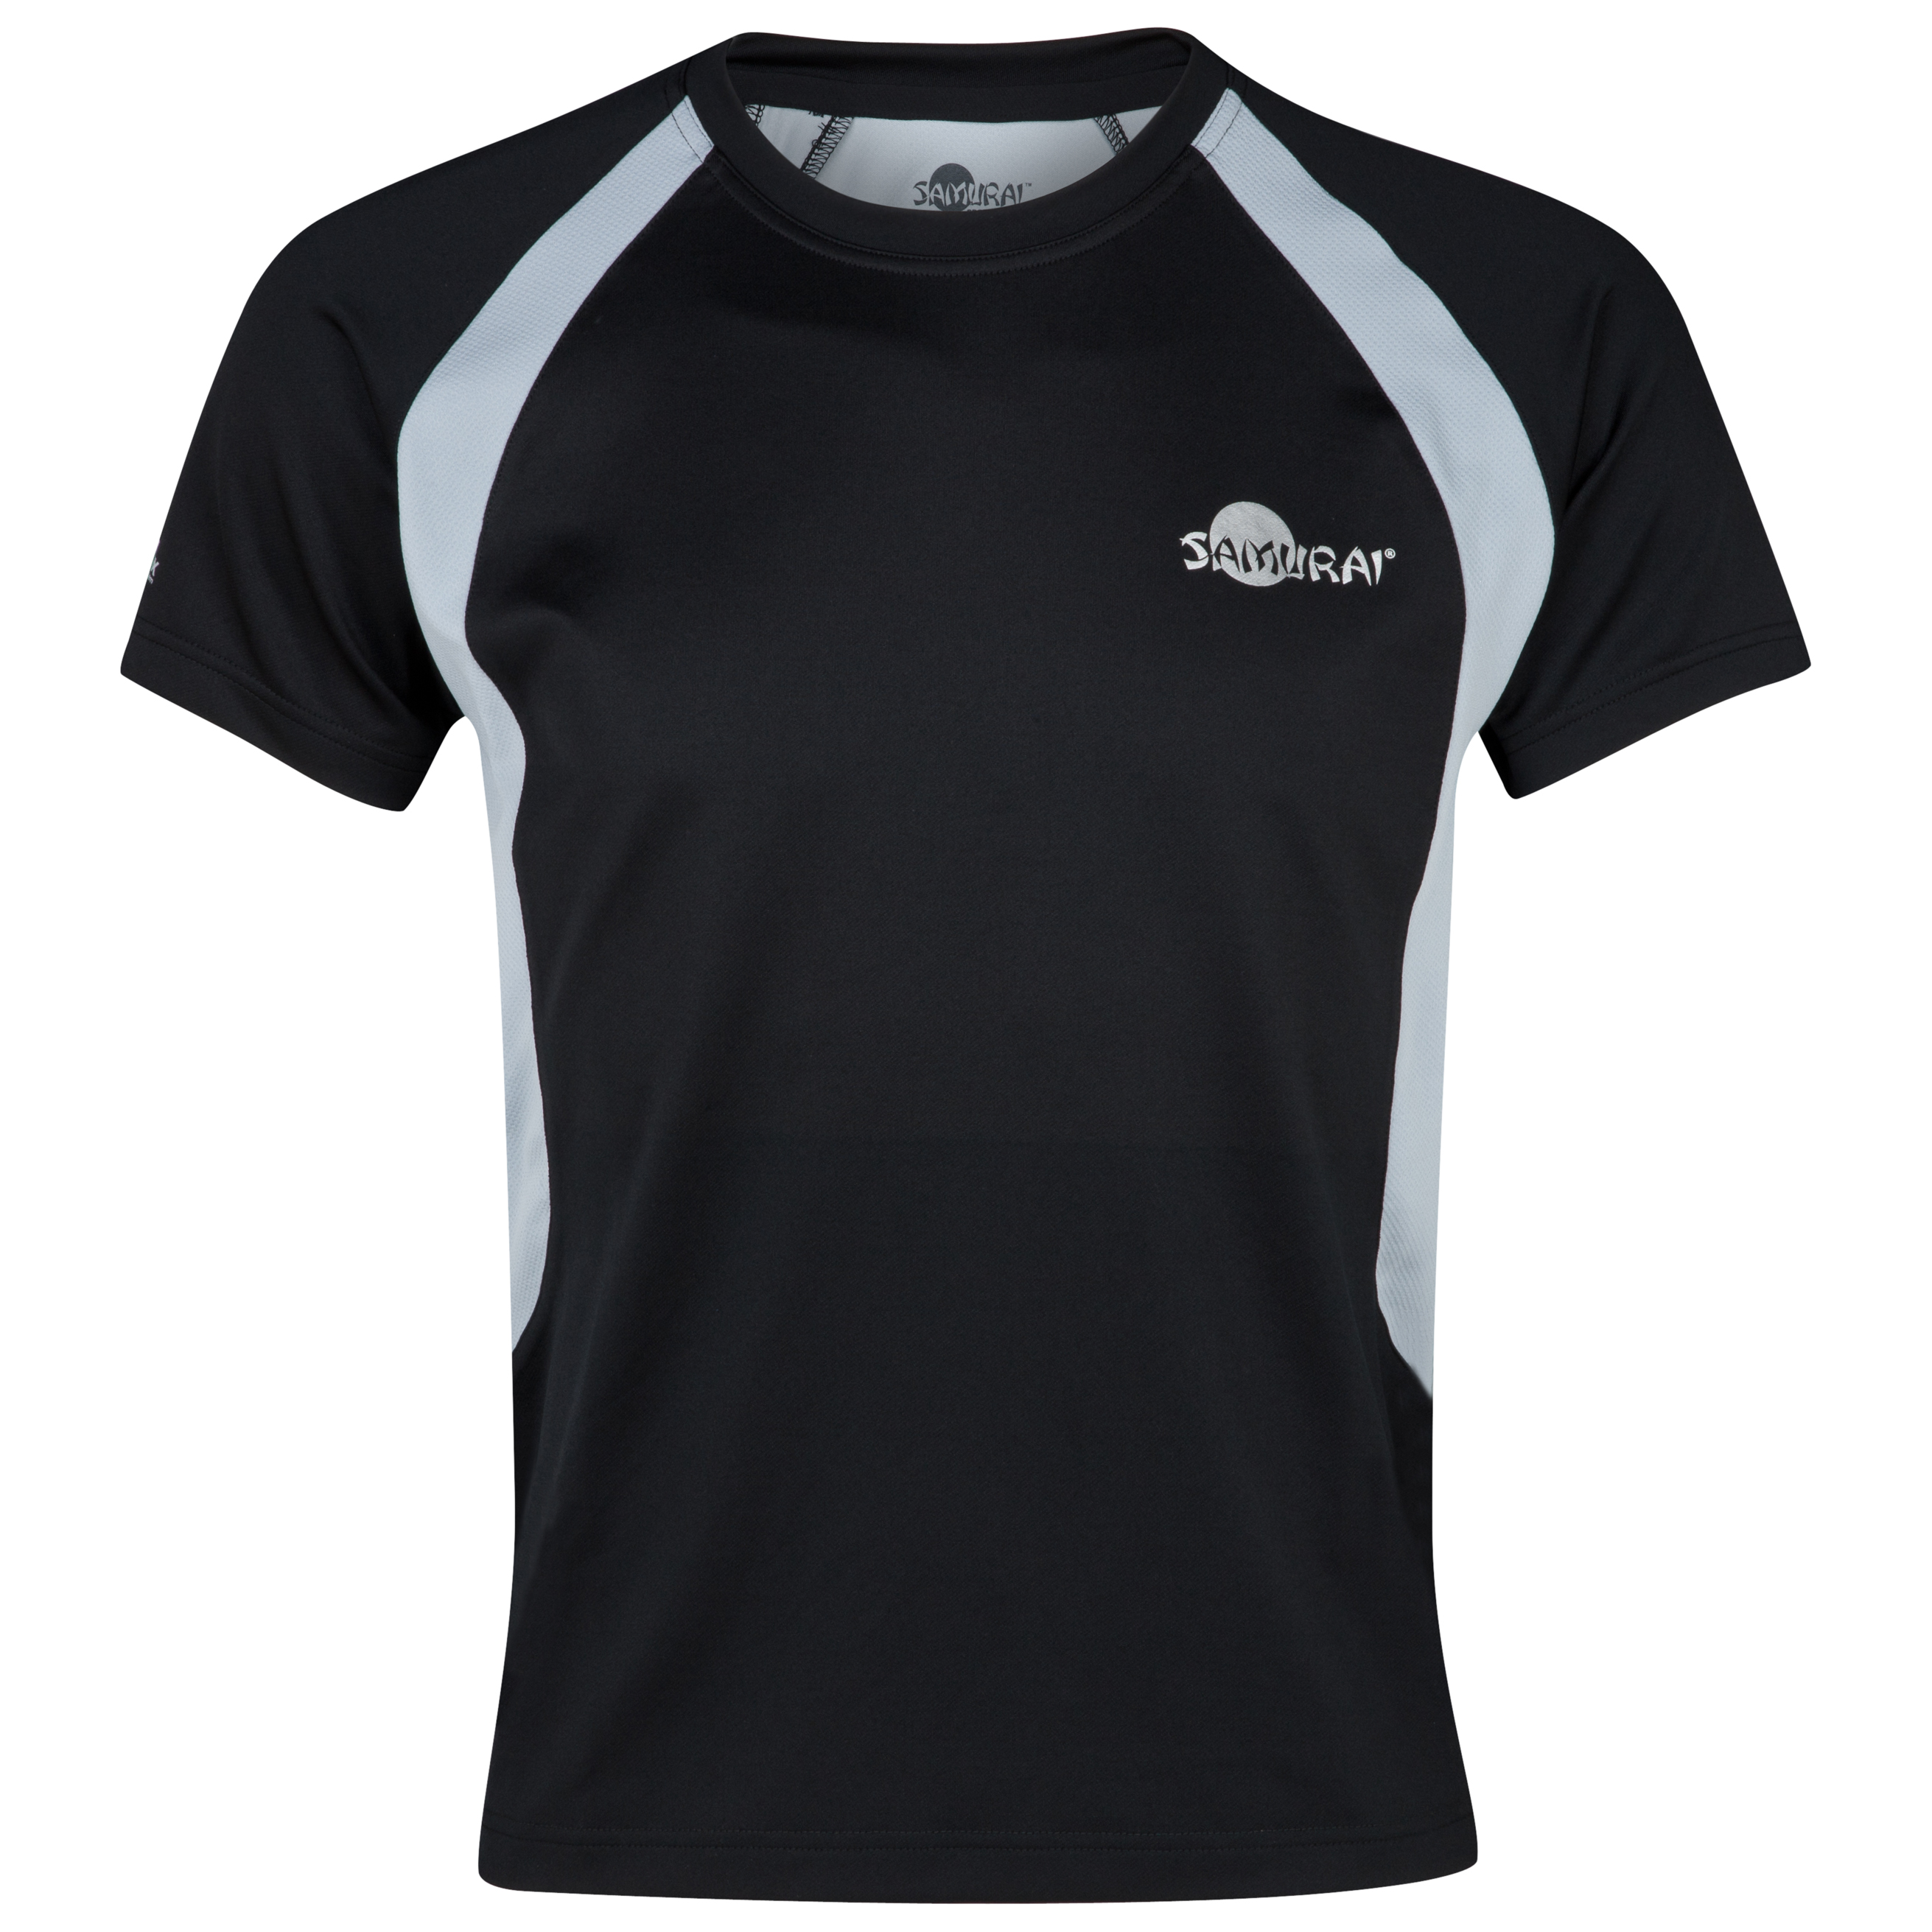 Samurai Rugby Elite T-Shirt - Black/Mist